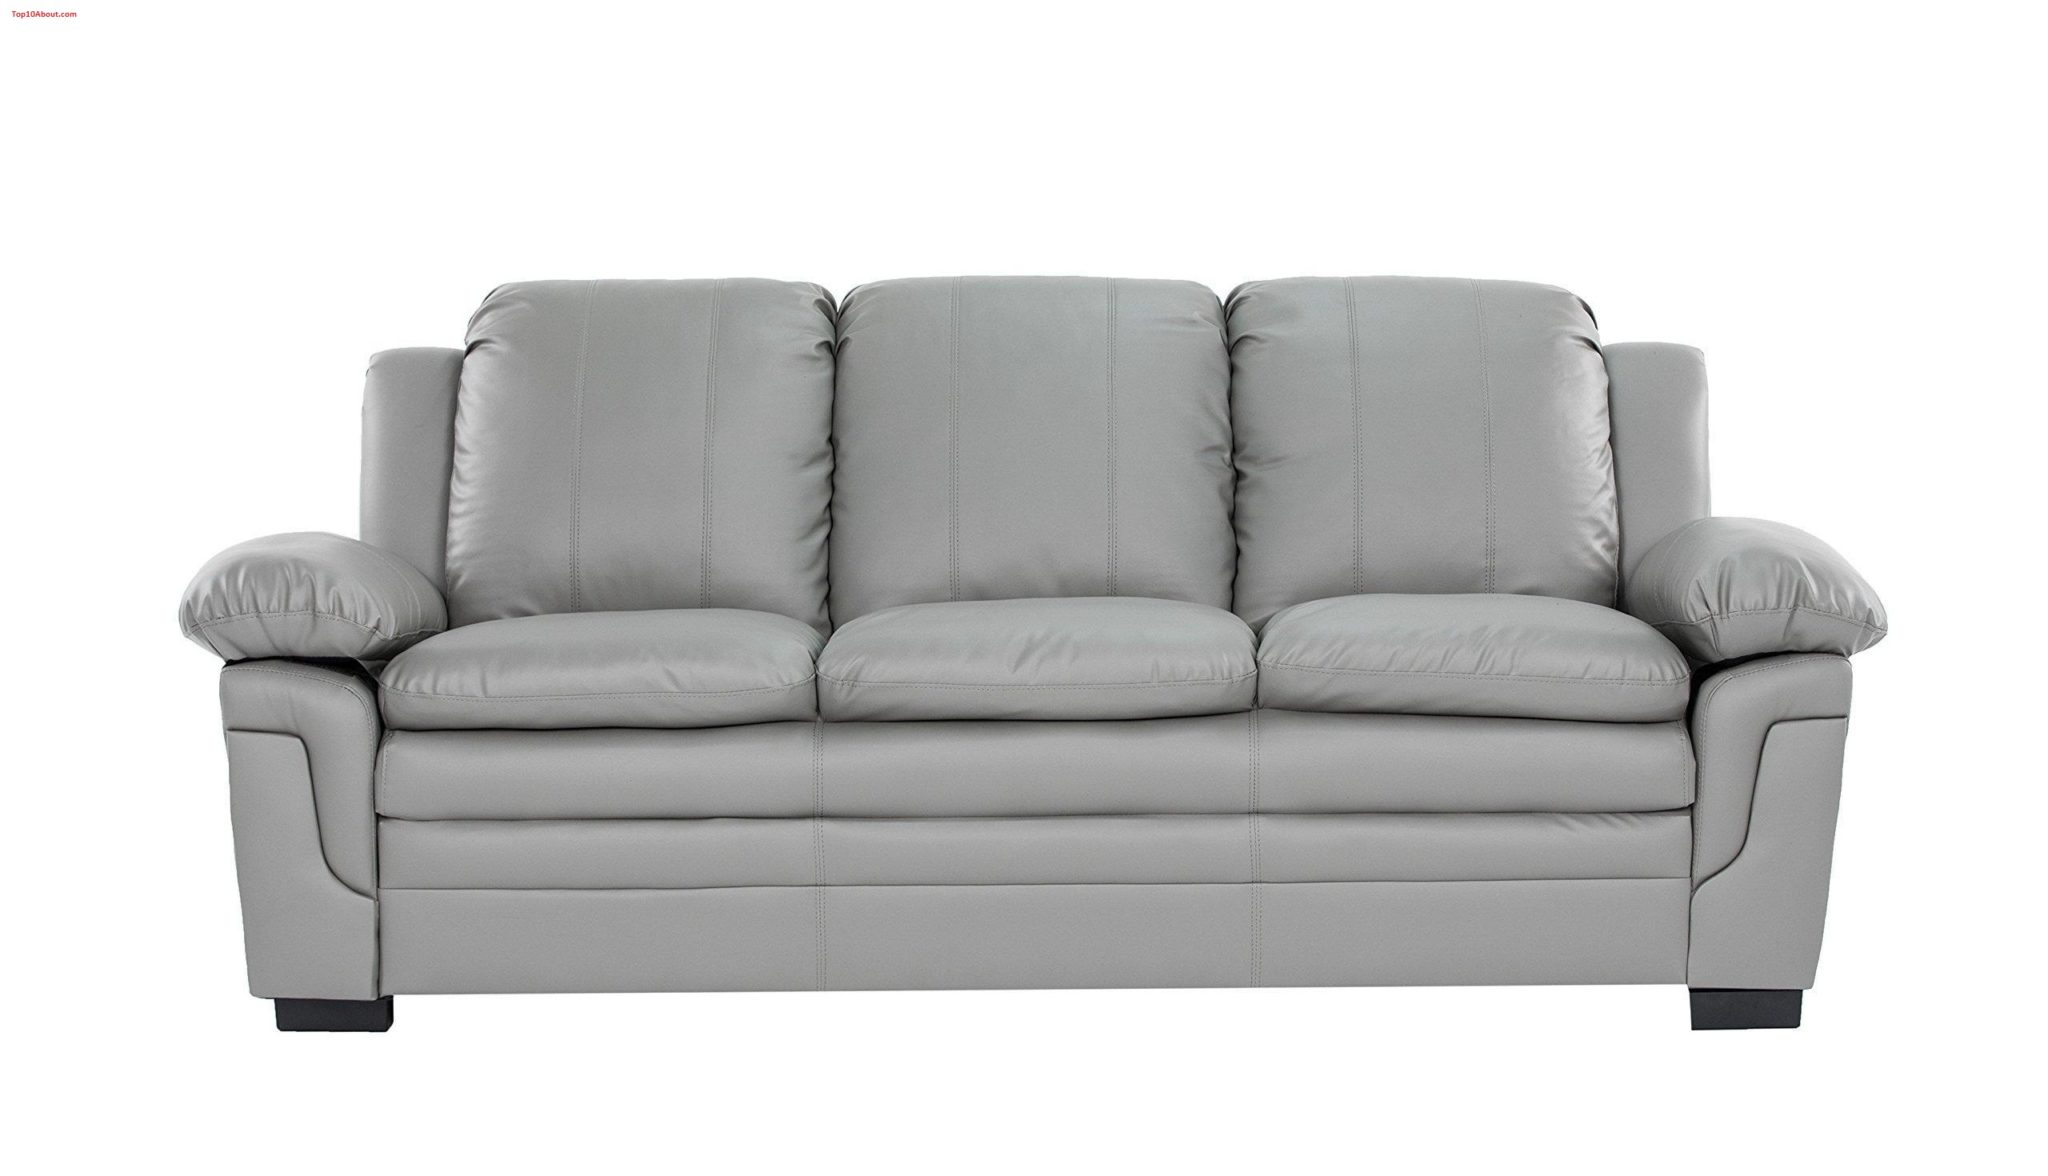 Top 10 Best Leather Sofa Brands in the World Top10About